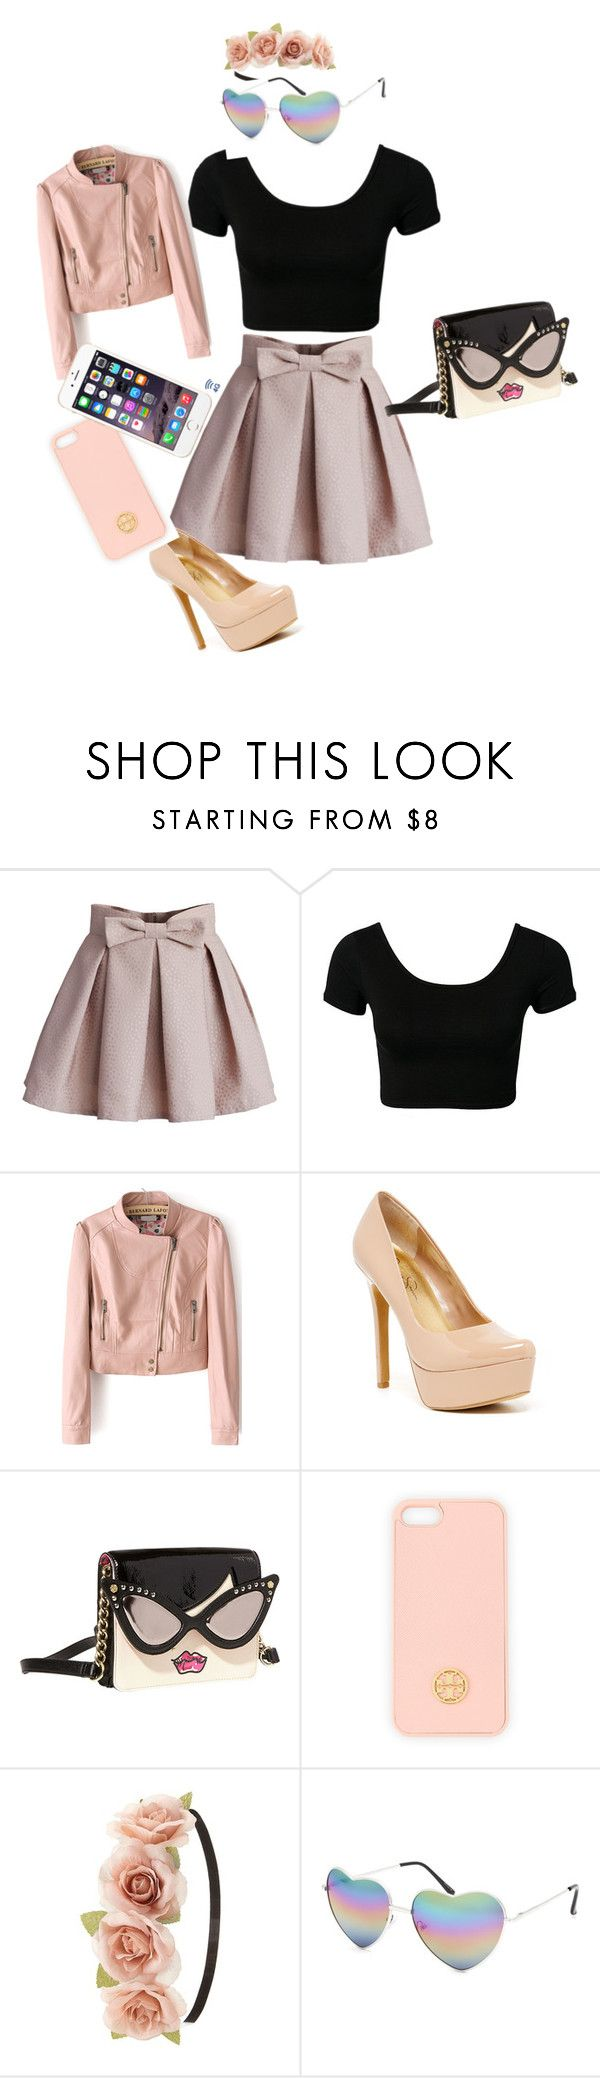 """Cute outfit"" by koraljackson ❤ liked on Polyvore featuring Chicwish, Jessica Simpson, Betsey Johnson, Tory Burch, Charlotte Russe and Full Tilt"